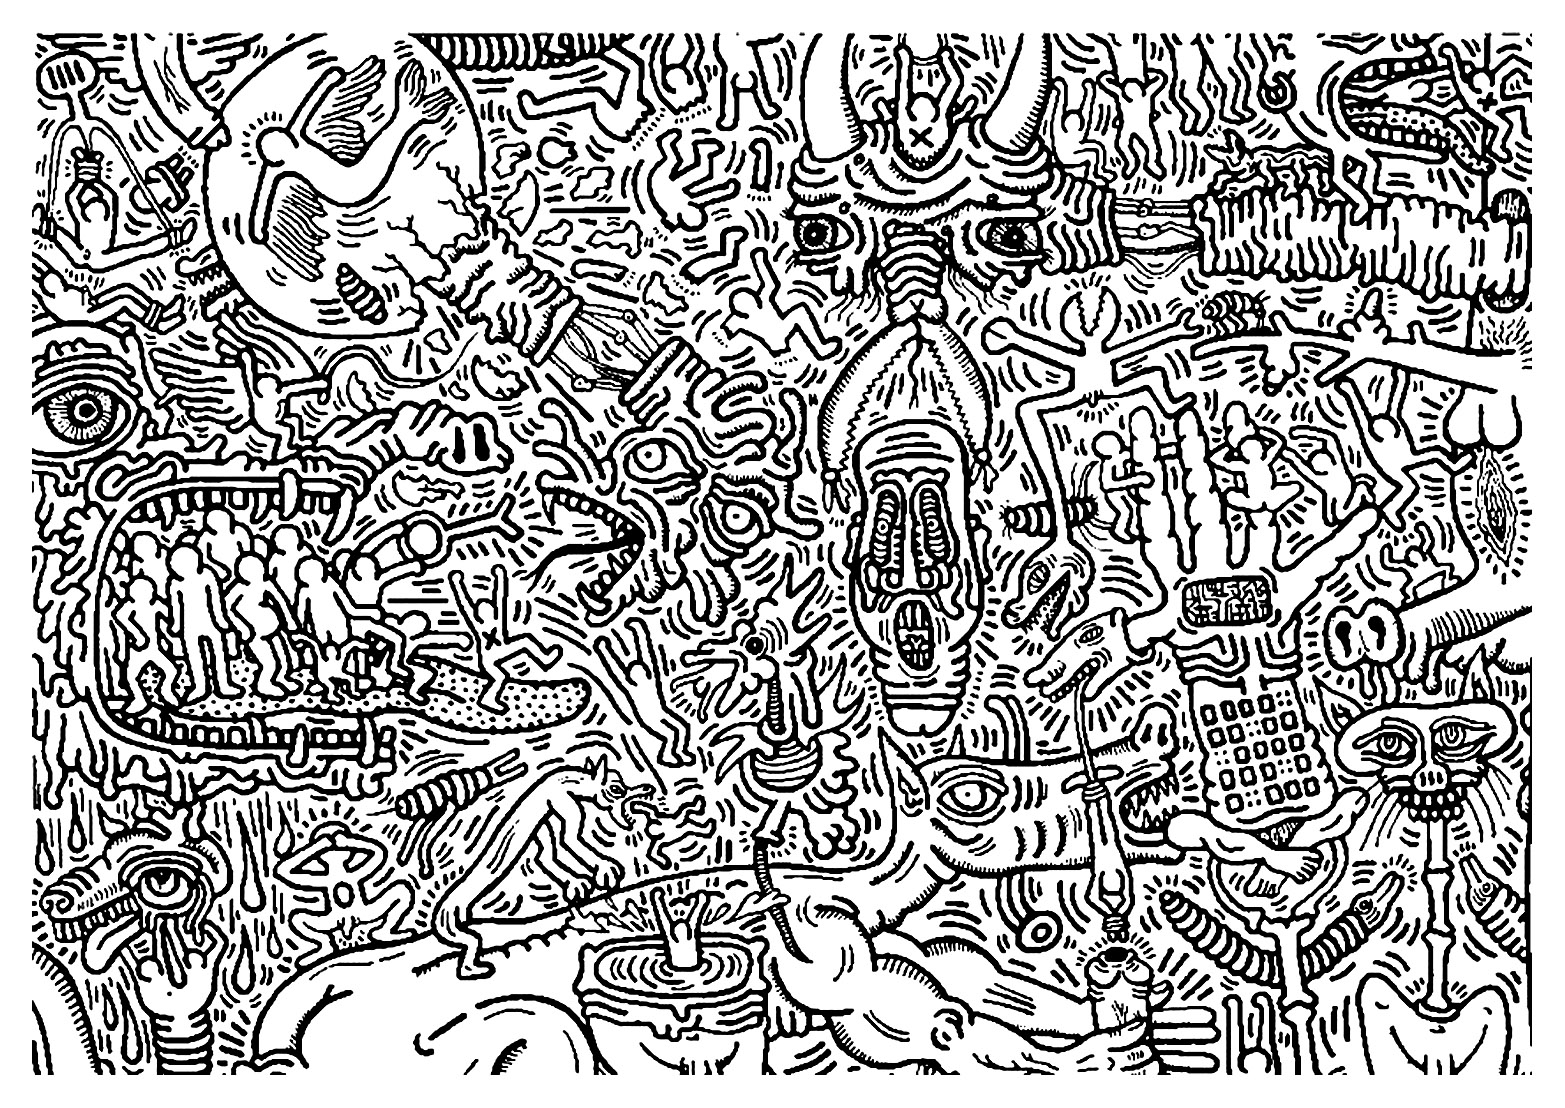 Uncategorized Keith Haring Coloring Pages keith haring 9 art coloring pages for kids to print color image with pop artist from